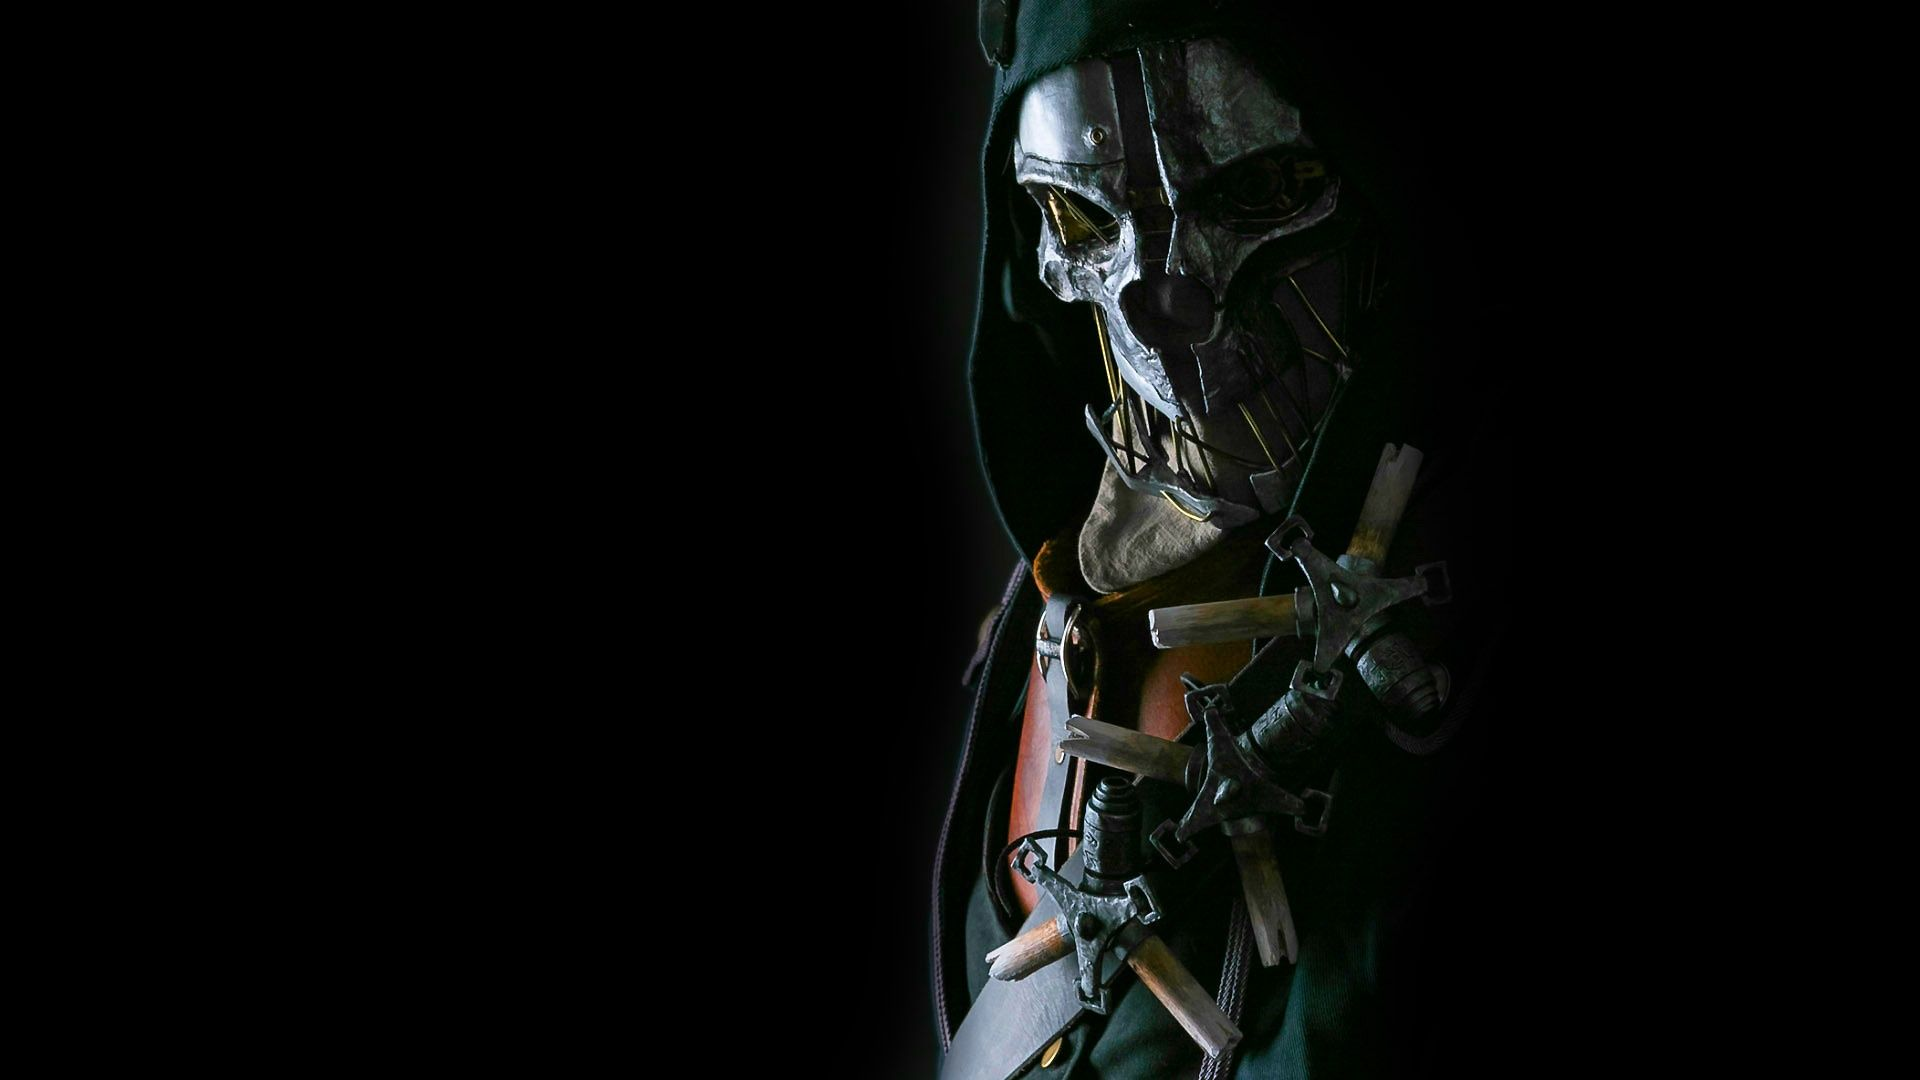 are you looking for dishonored wallpapers? download latest